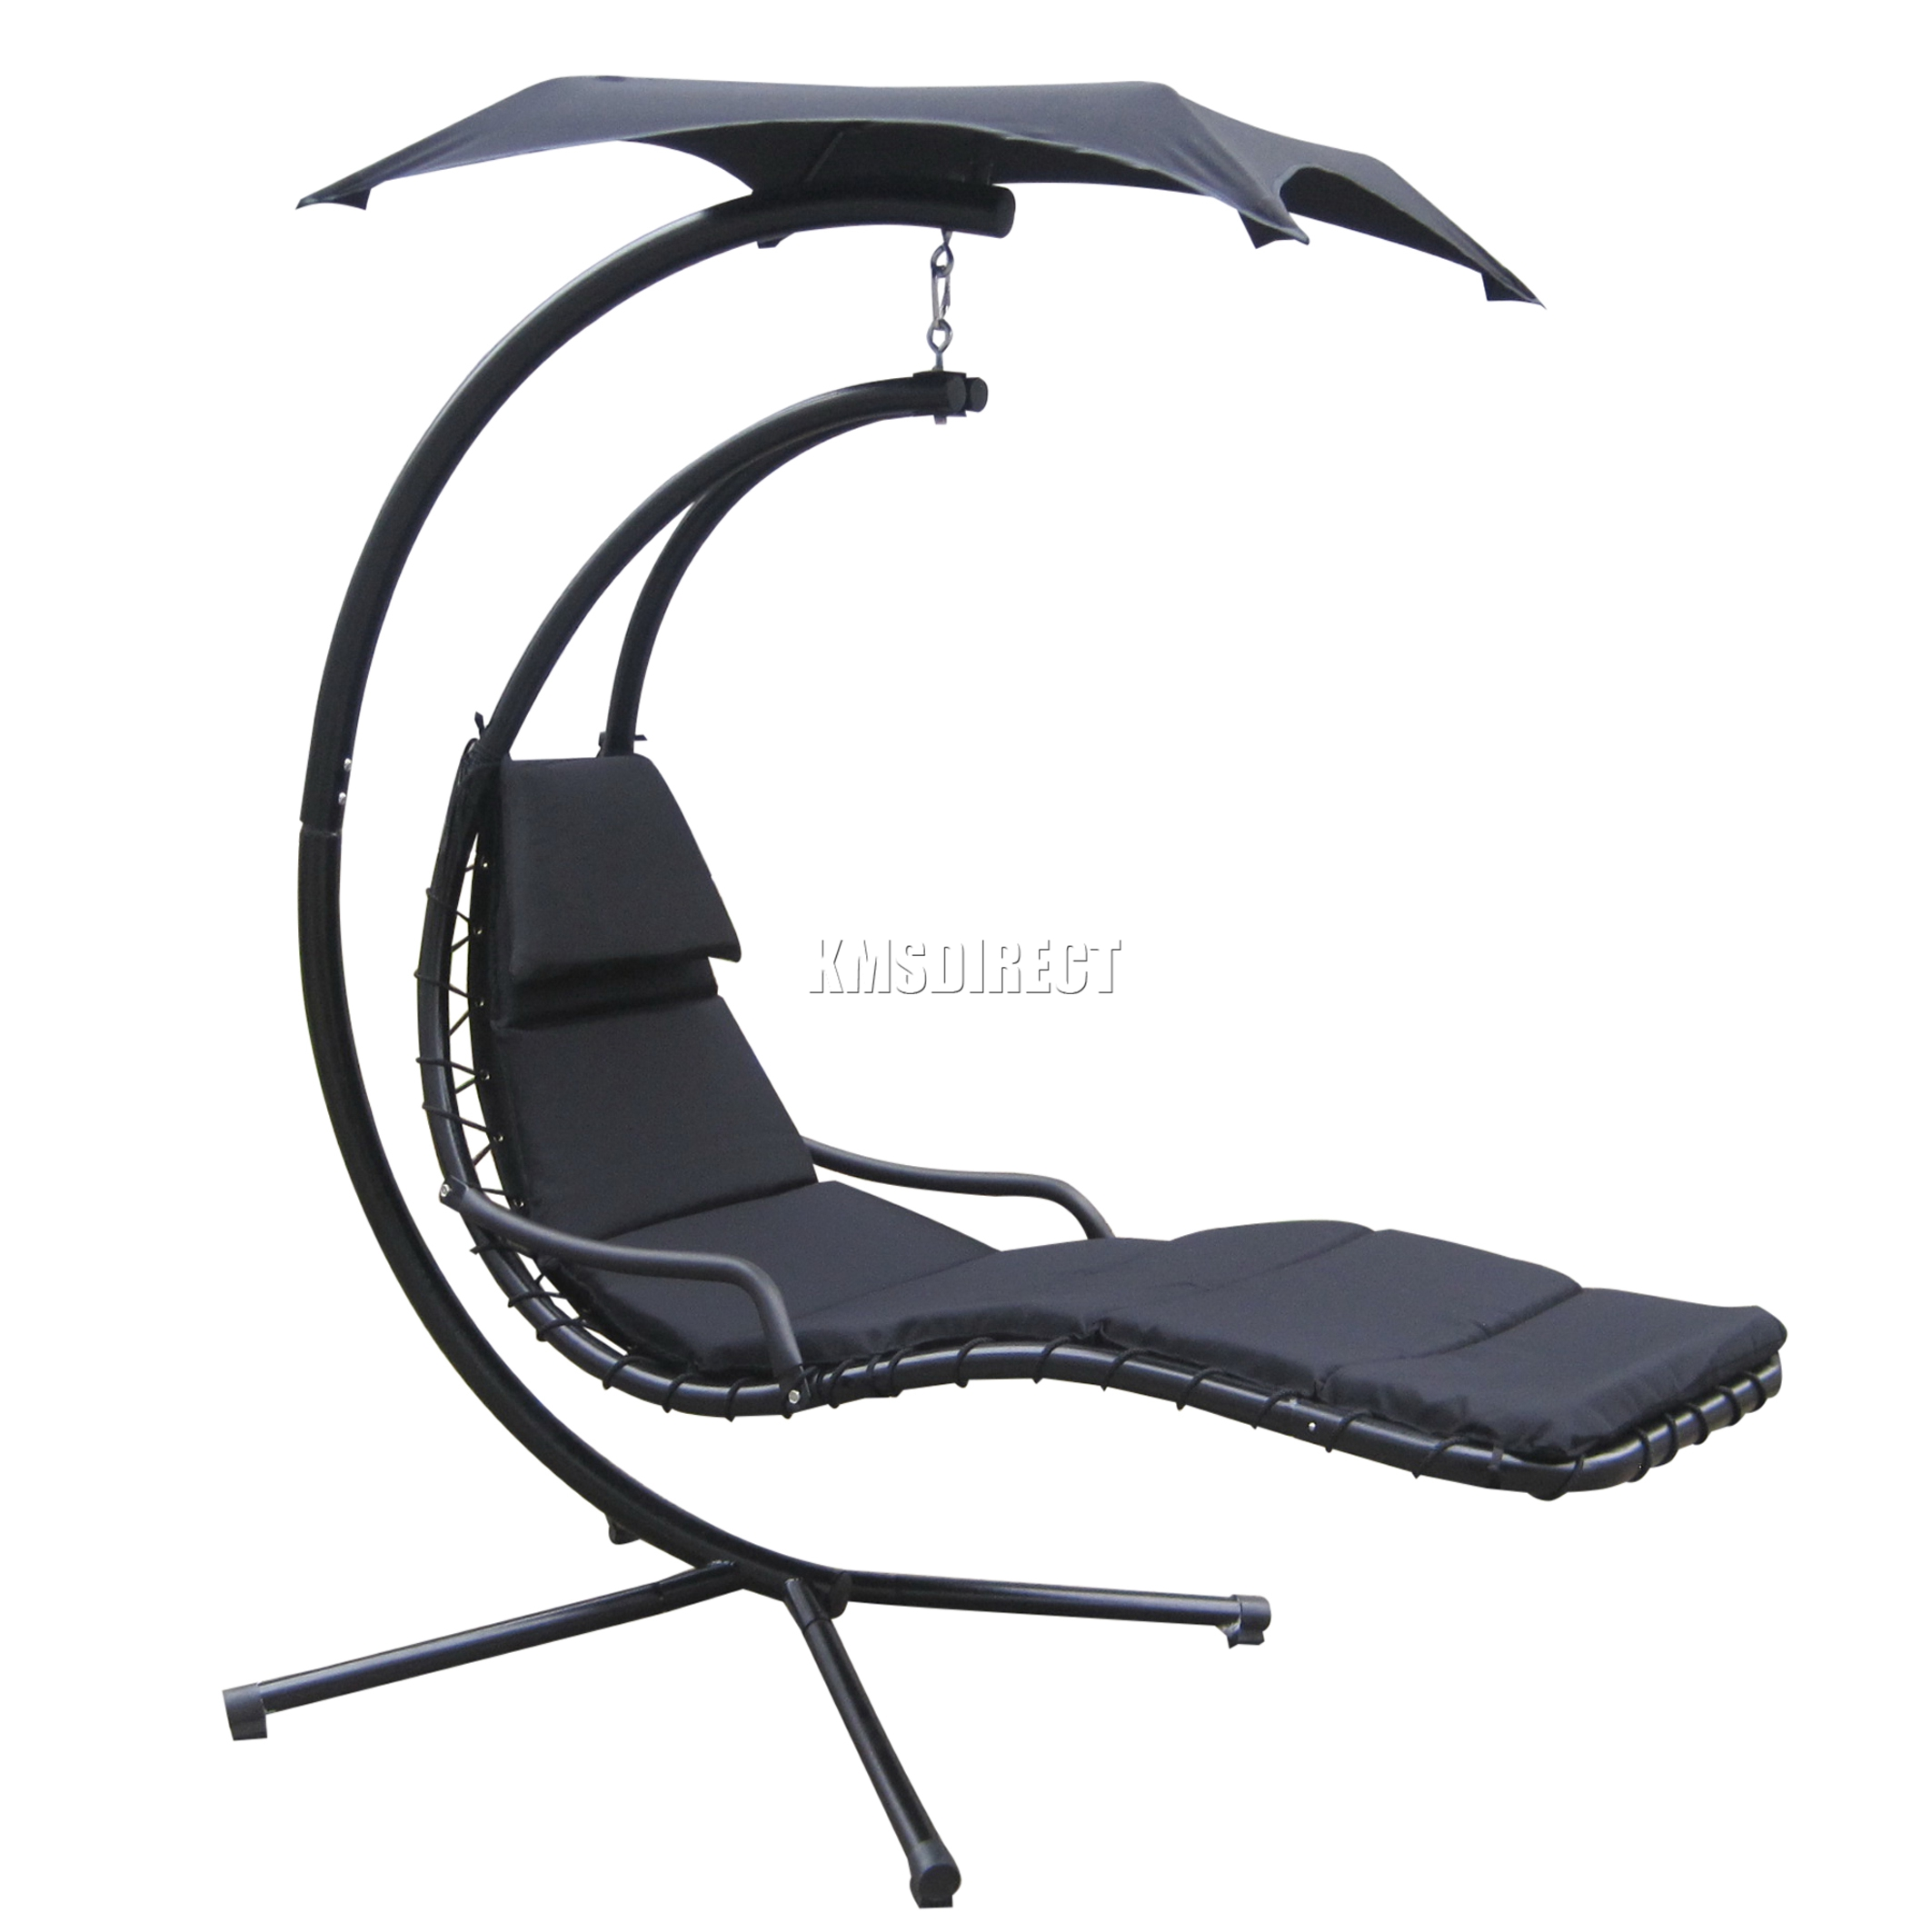 FoxHunter Garden Black Helicopter Hanging Dream Chair ... on Hanging Helicopter Dream Lounger Chair id=36499